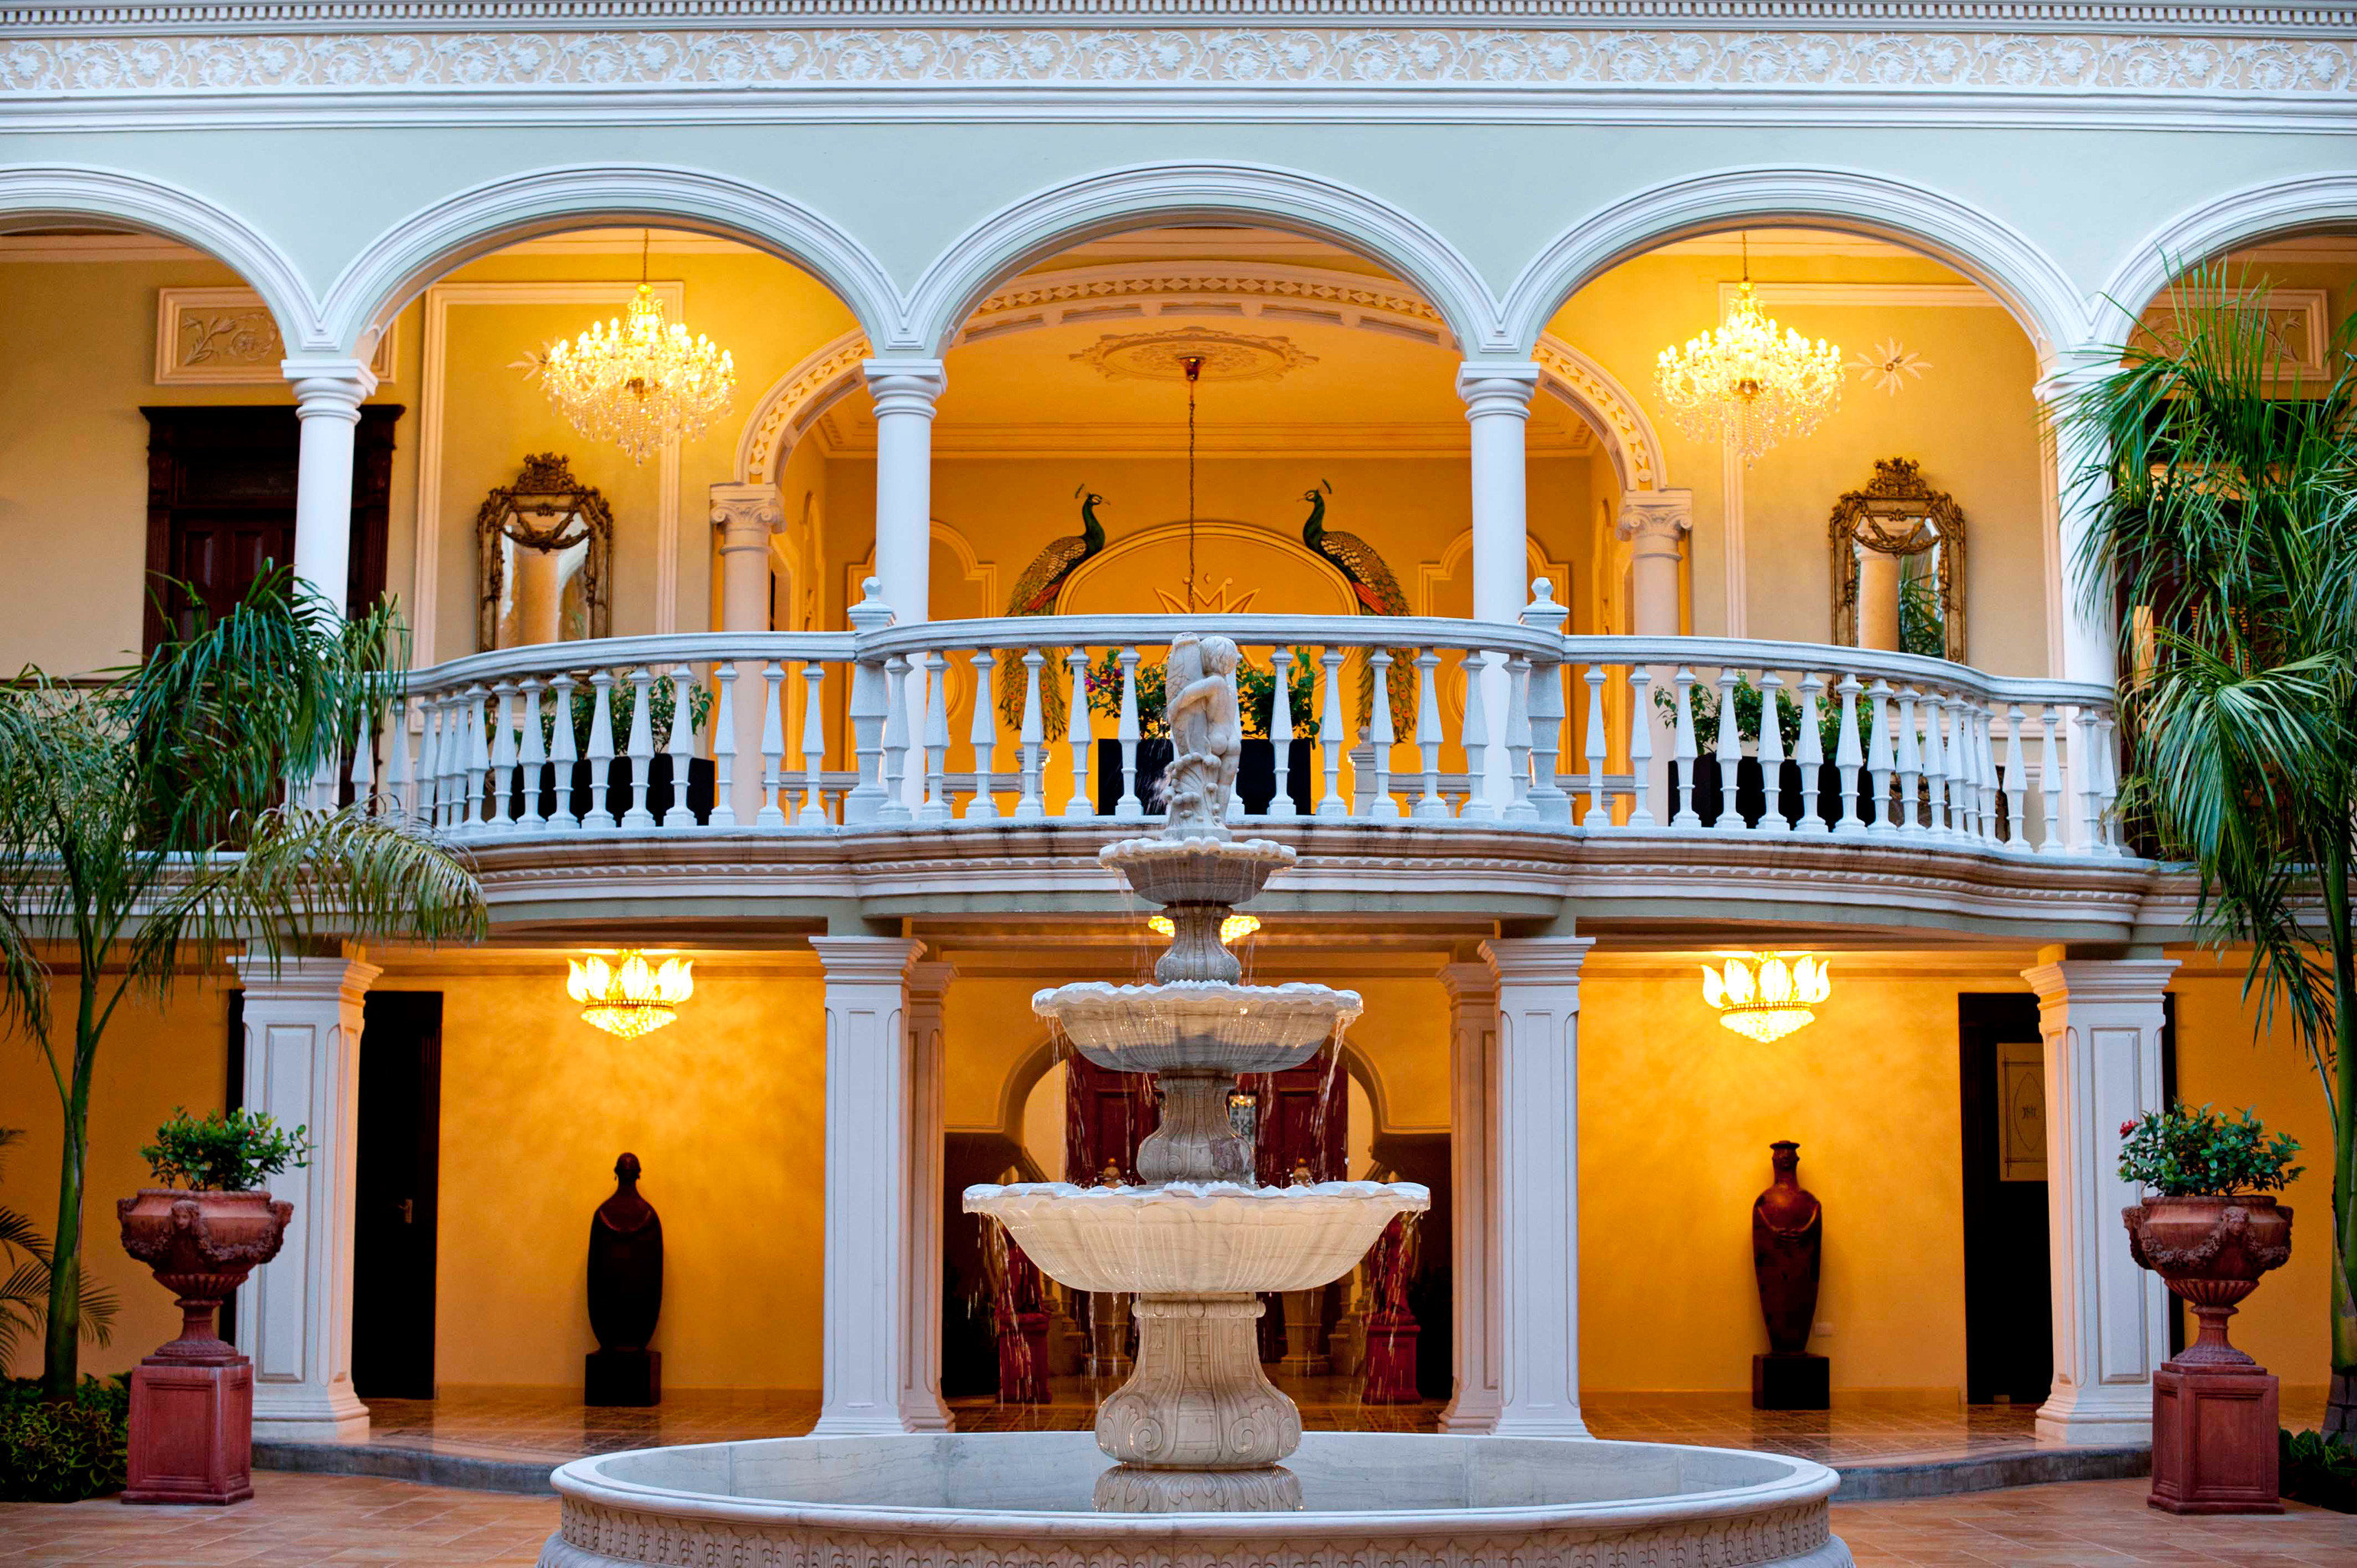 Elegant Exterior Grounds Mexico Trip Ideas Weekend Getaways building palace yellow Lobby mansion hacienda tourist attraction colonnade